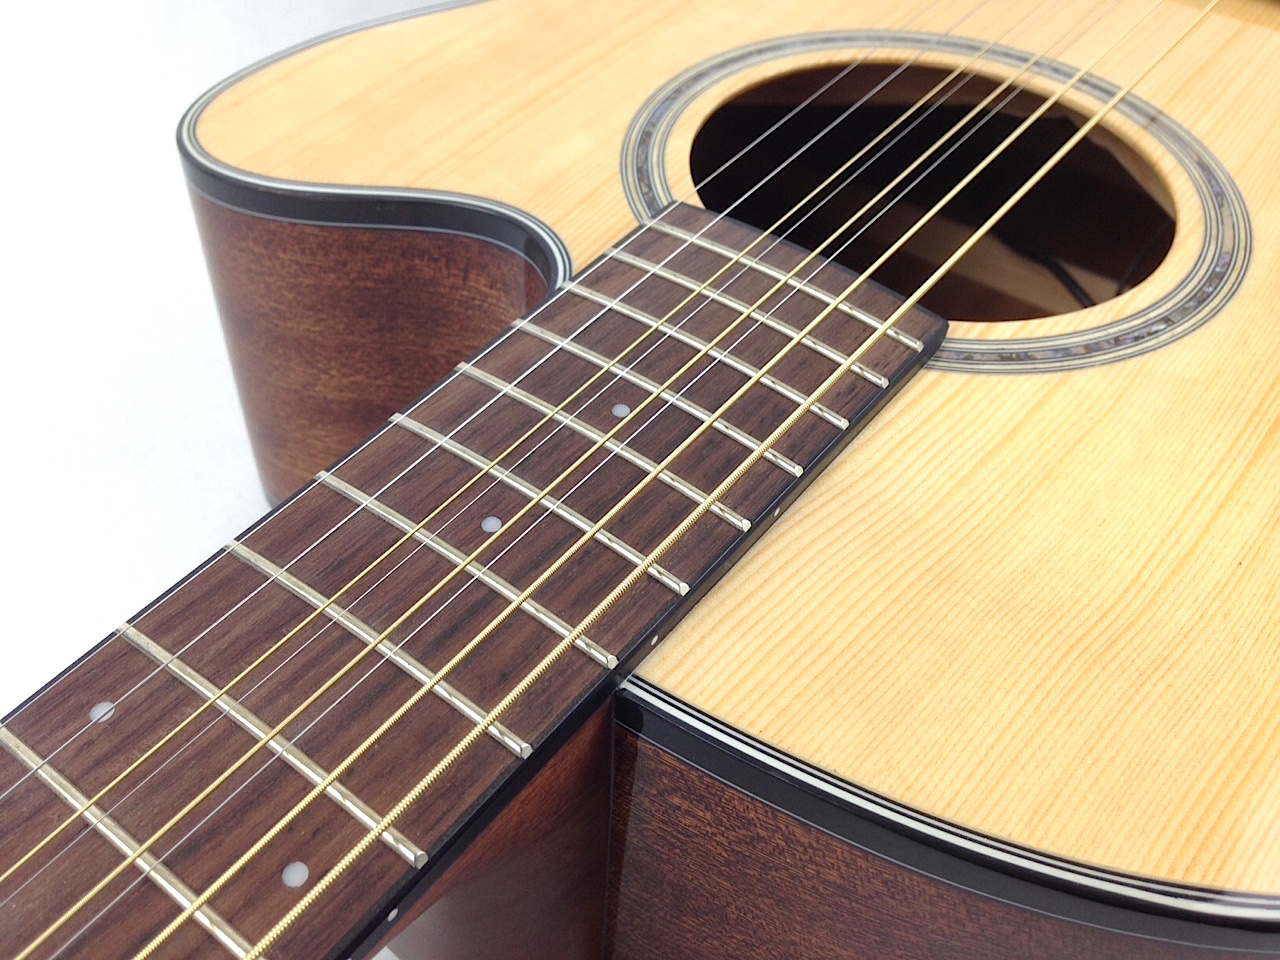 ibanez ael108md 8 string acoustic electric guitar. Black Bedroom Furniture Sets. Home Design Ideas